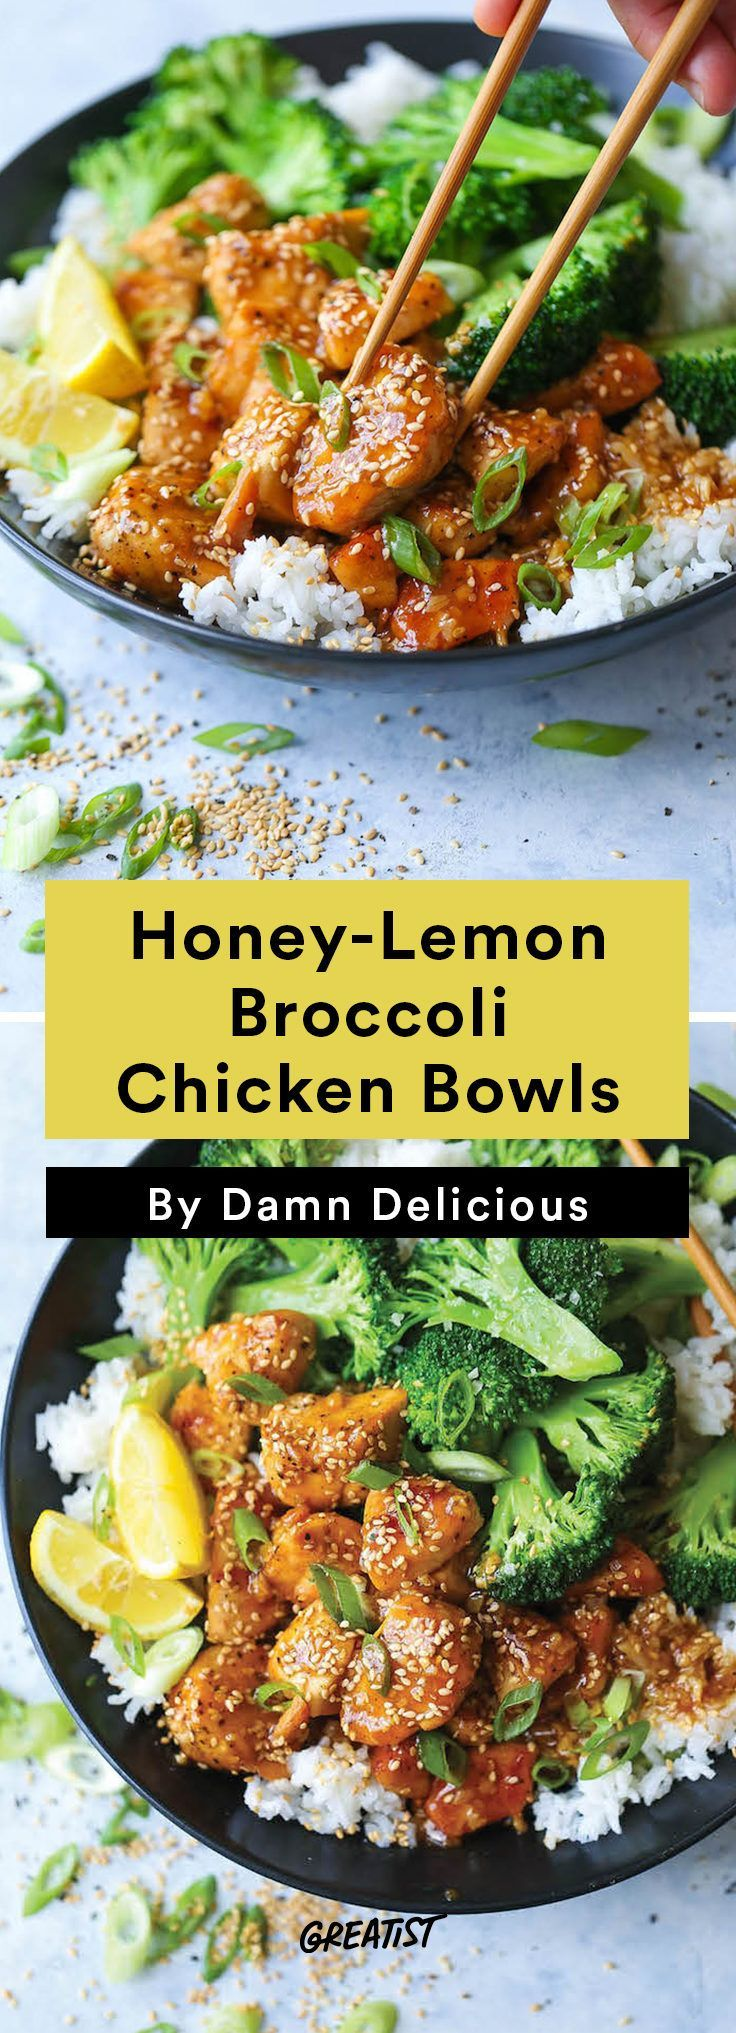 1. Honey-Lemon Chicken Broccoli Bowls #easy #dinner #recipes http://greatist.com/eat/easy-dinner-recipes-to-make-this-week